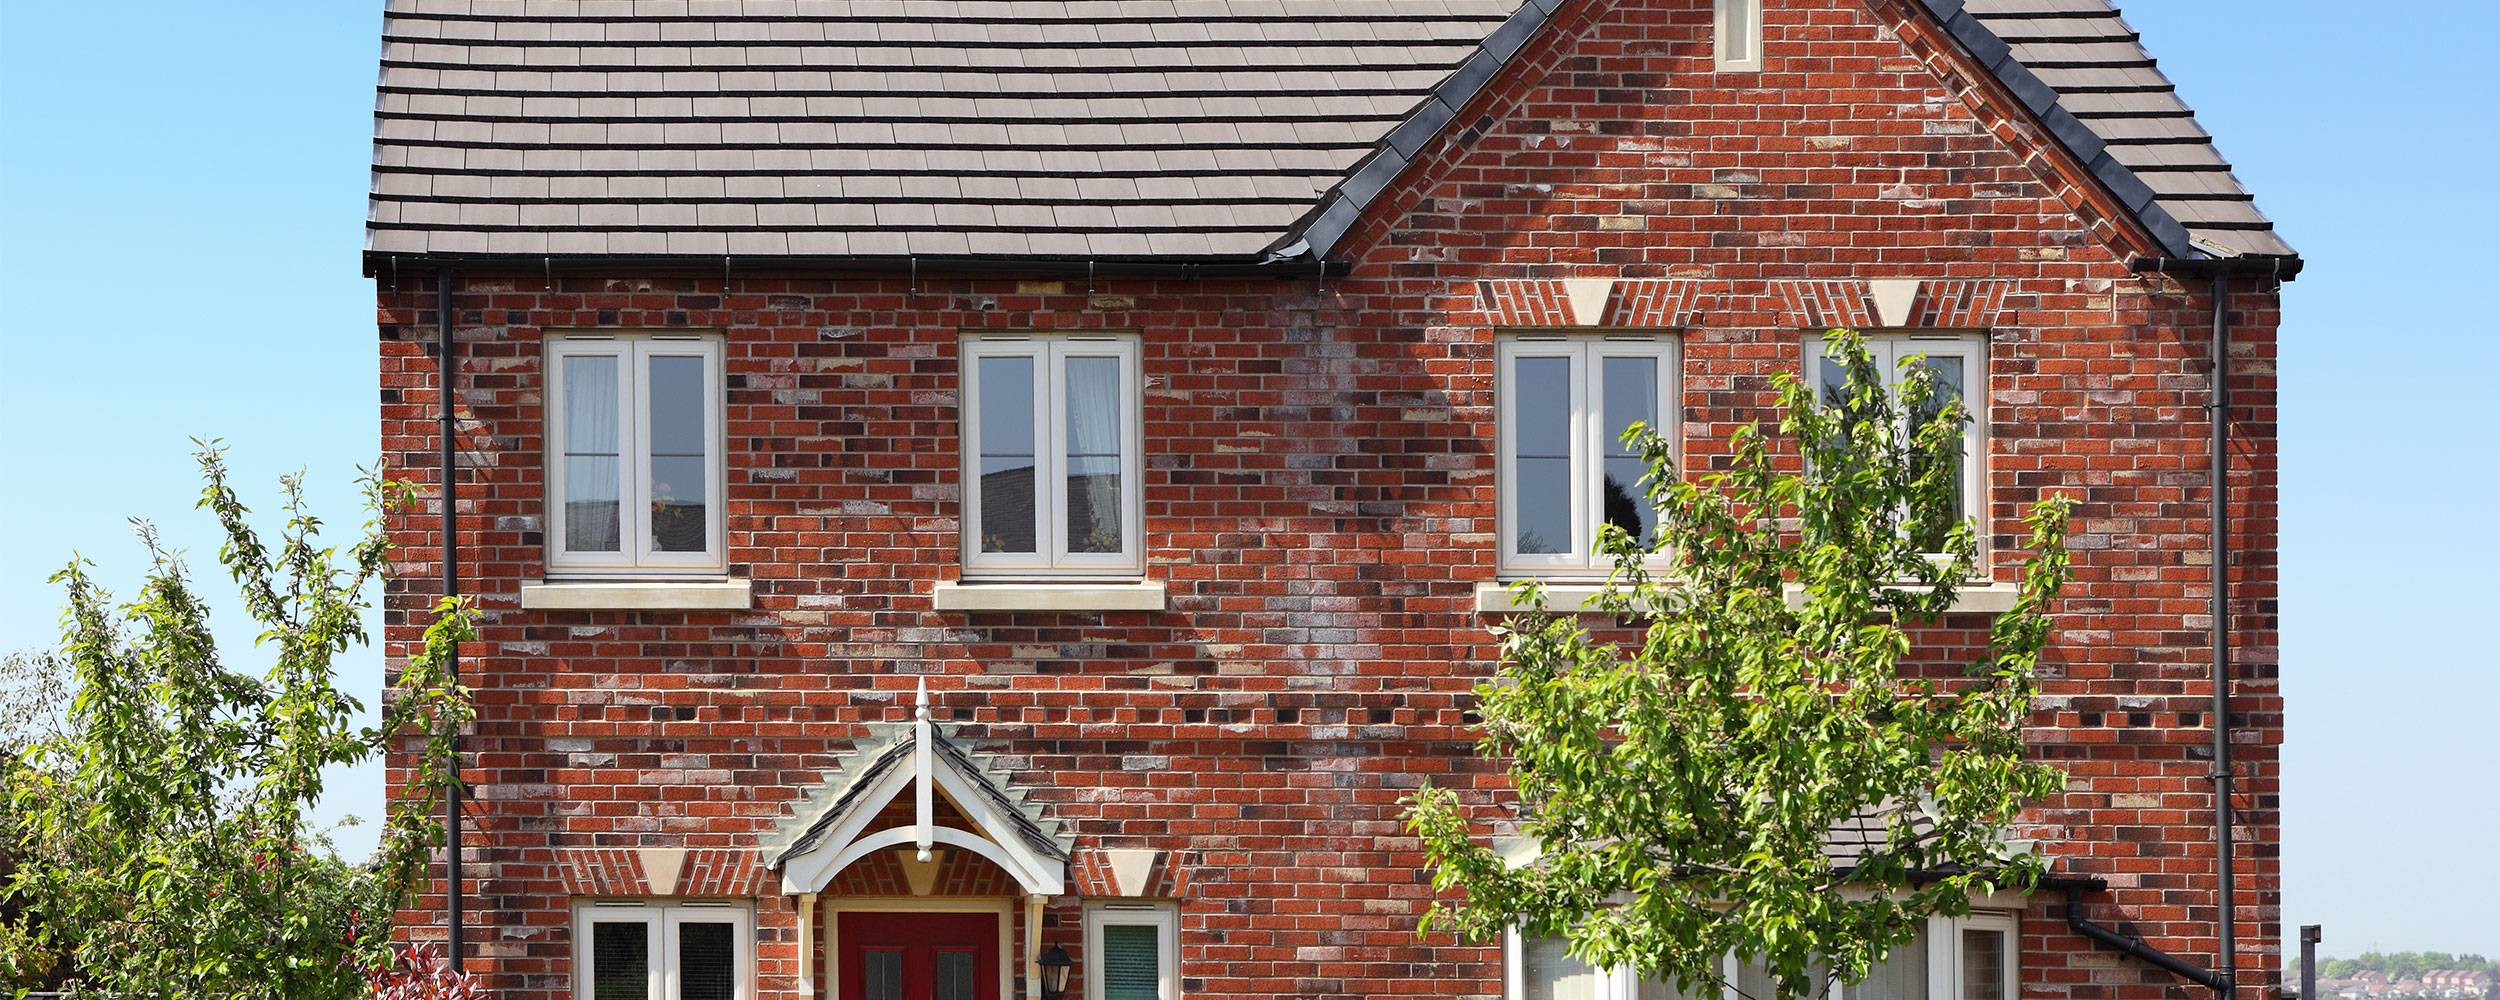 Red brick house with new white window installations